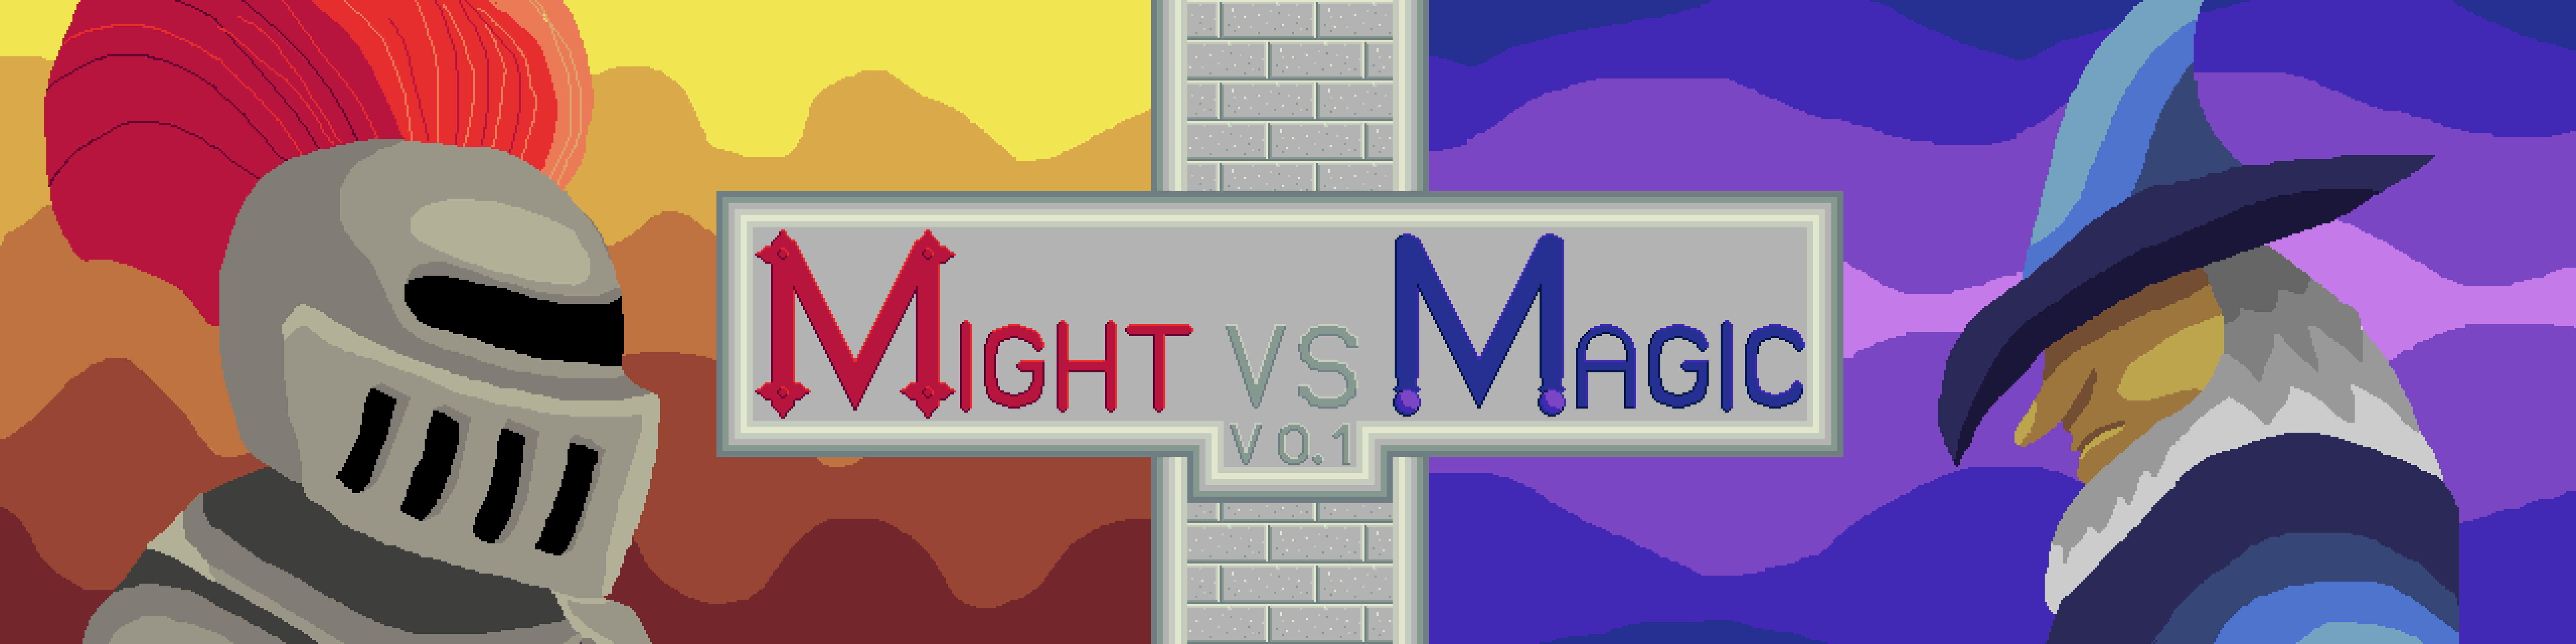 Might Vs magic